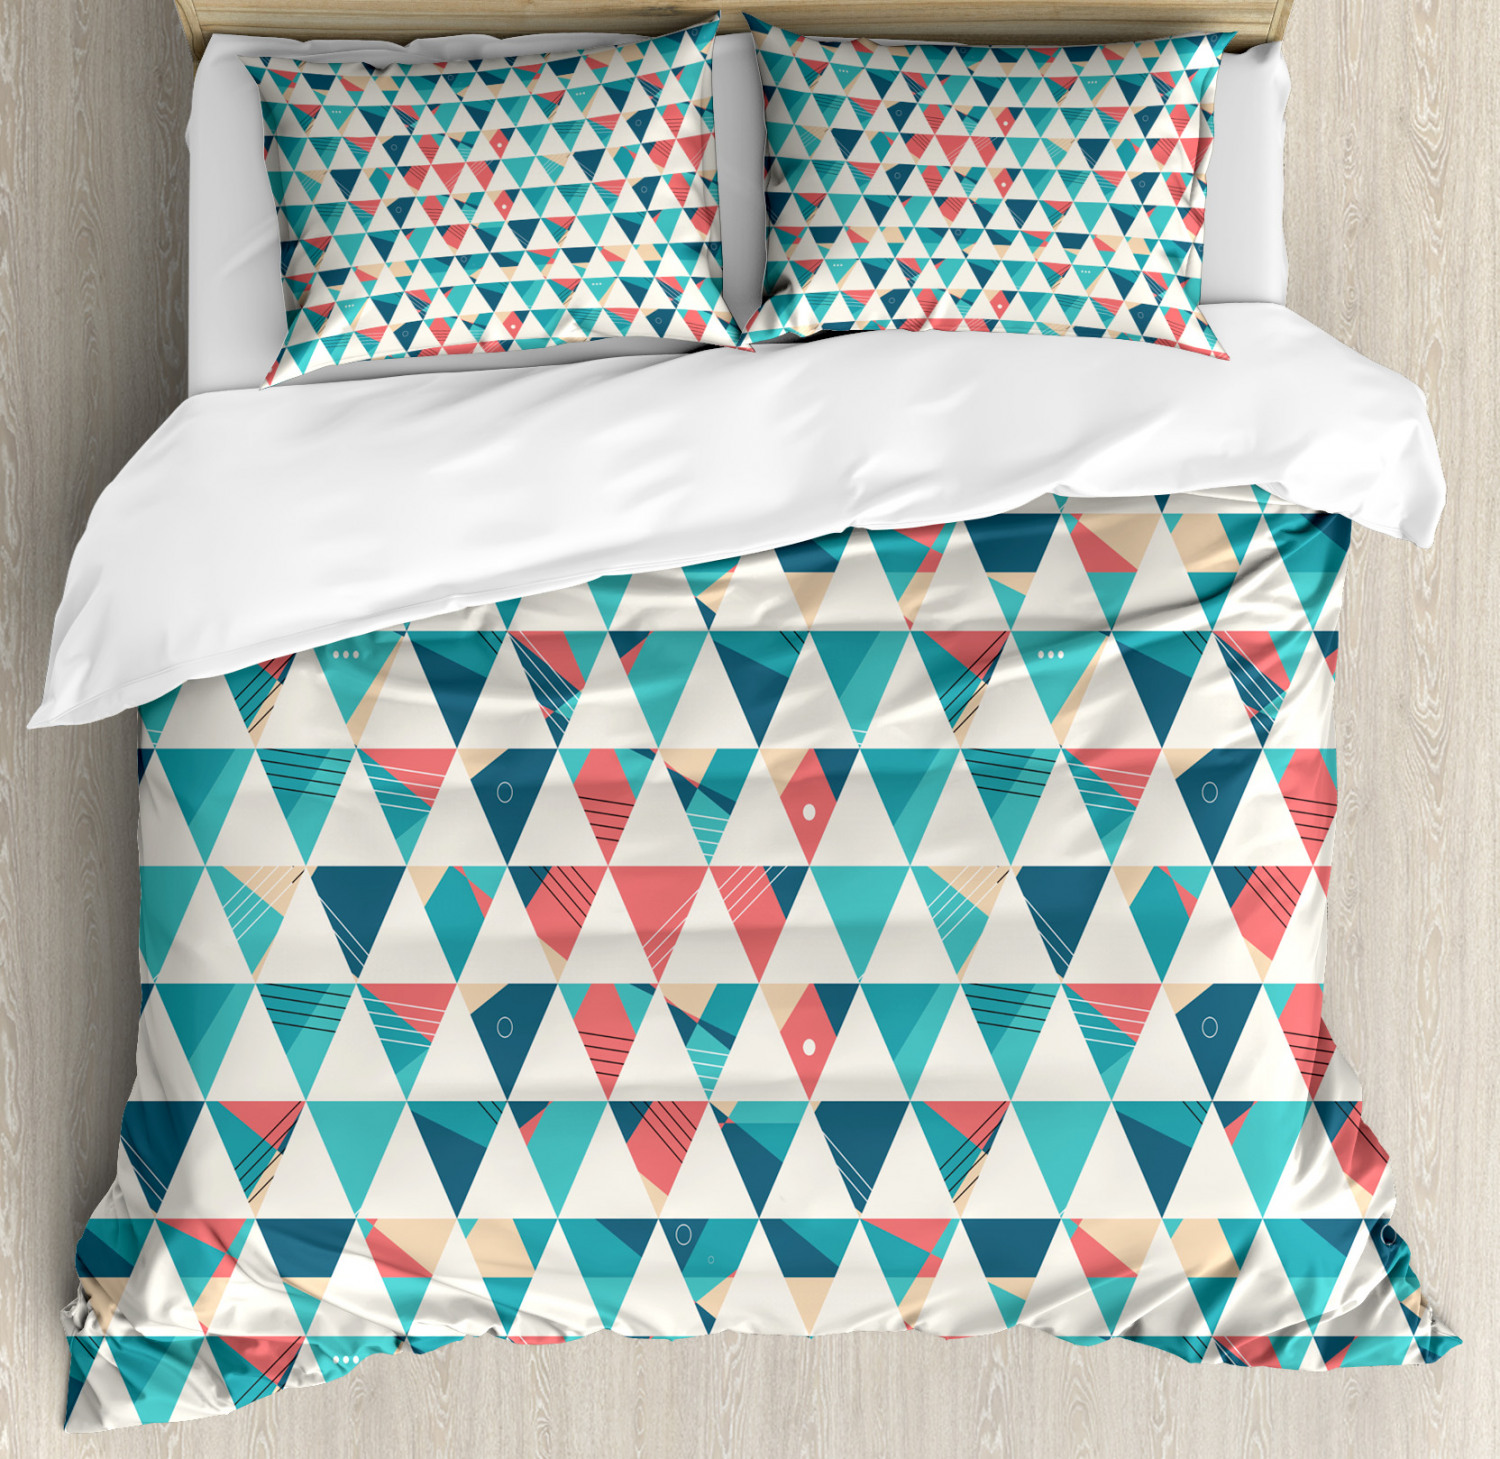 Geometric Duvet Cover Set with Pillow Shams Triangle Hexagons Print